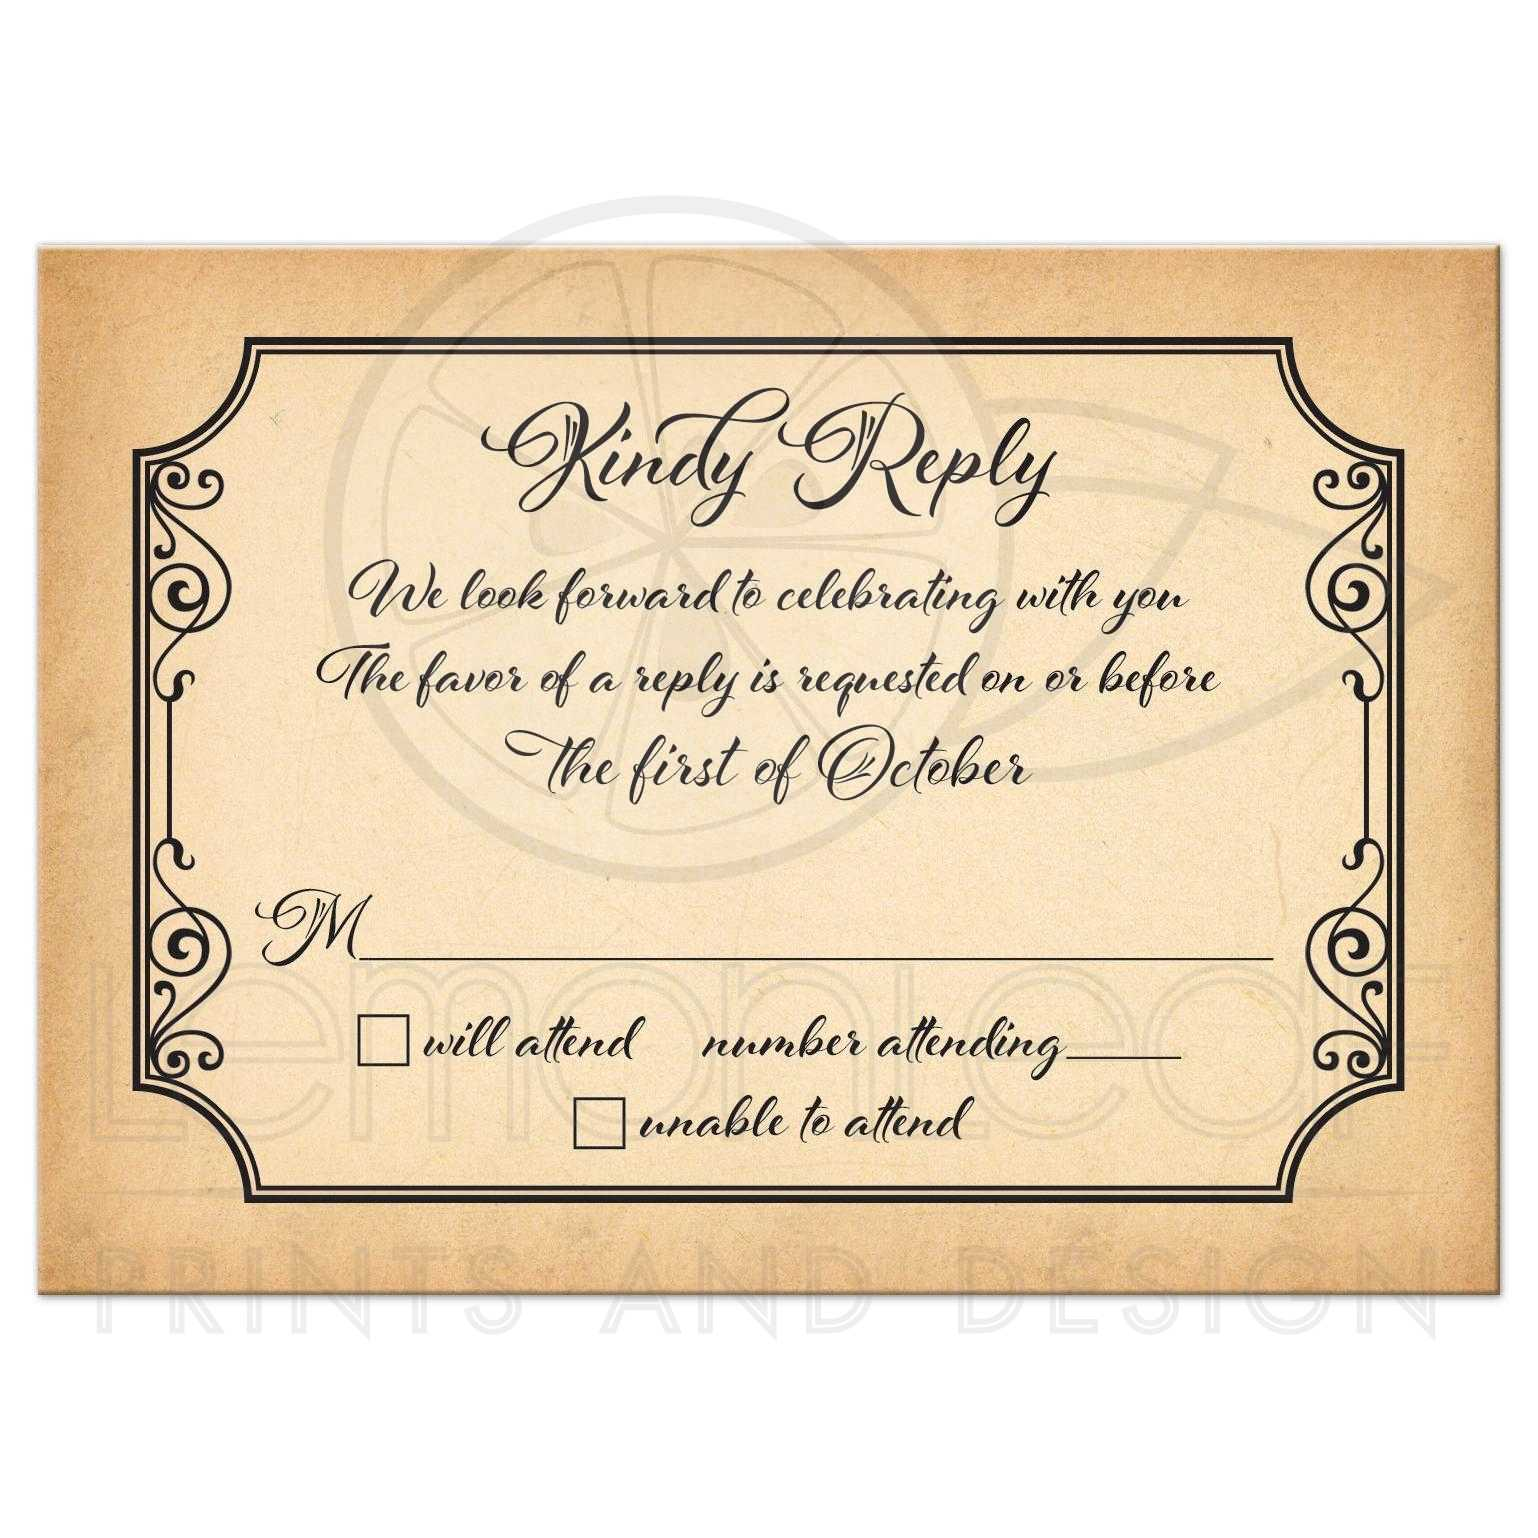 Old world calligraphy wedding rsvp card aged parchment look